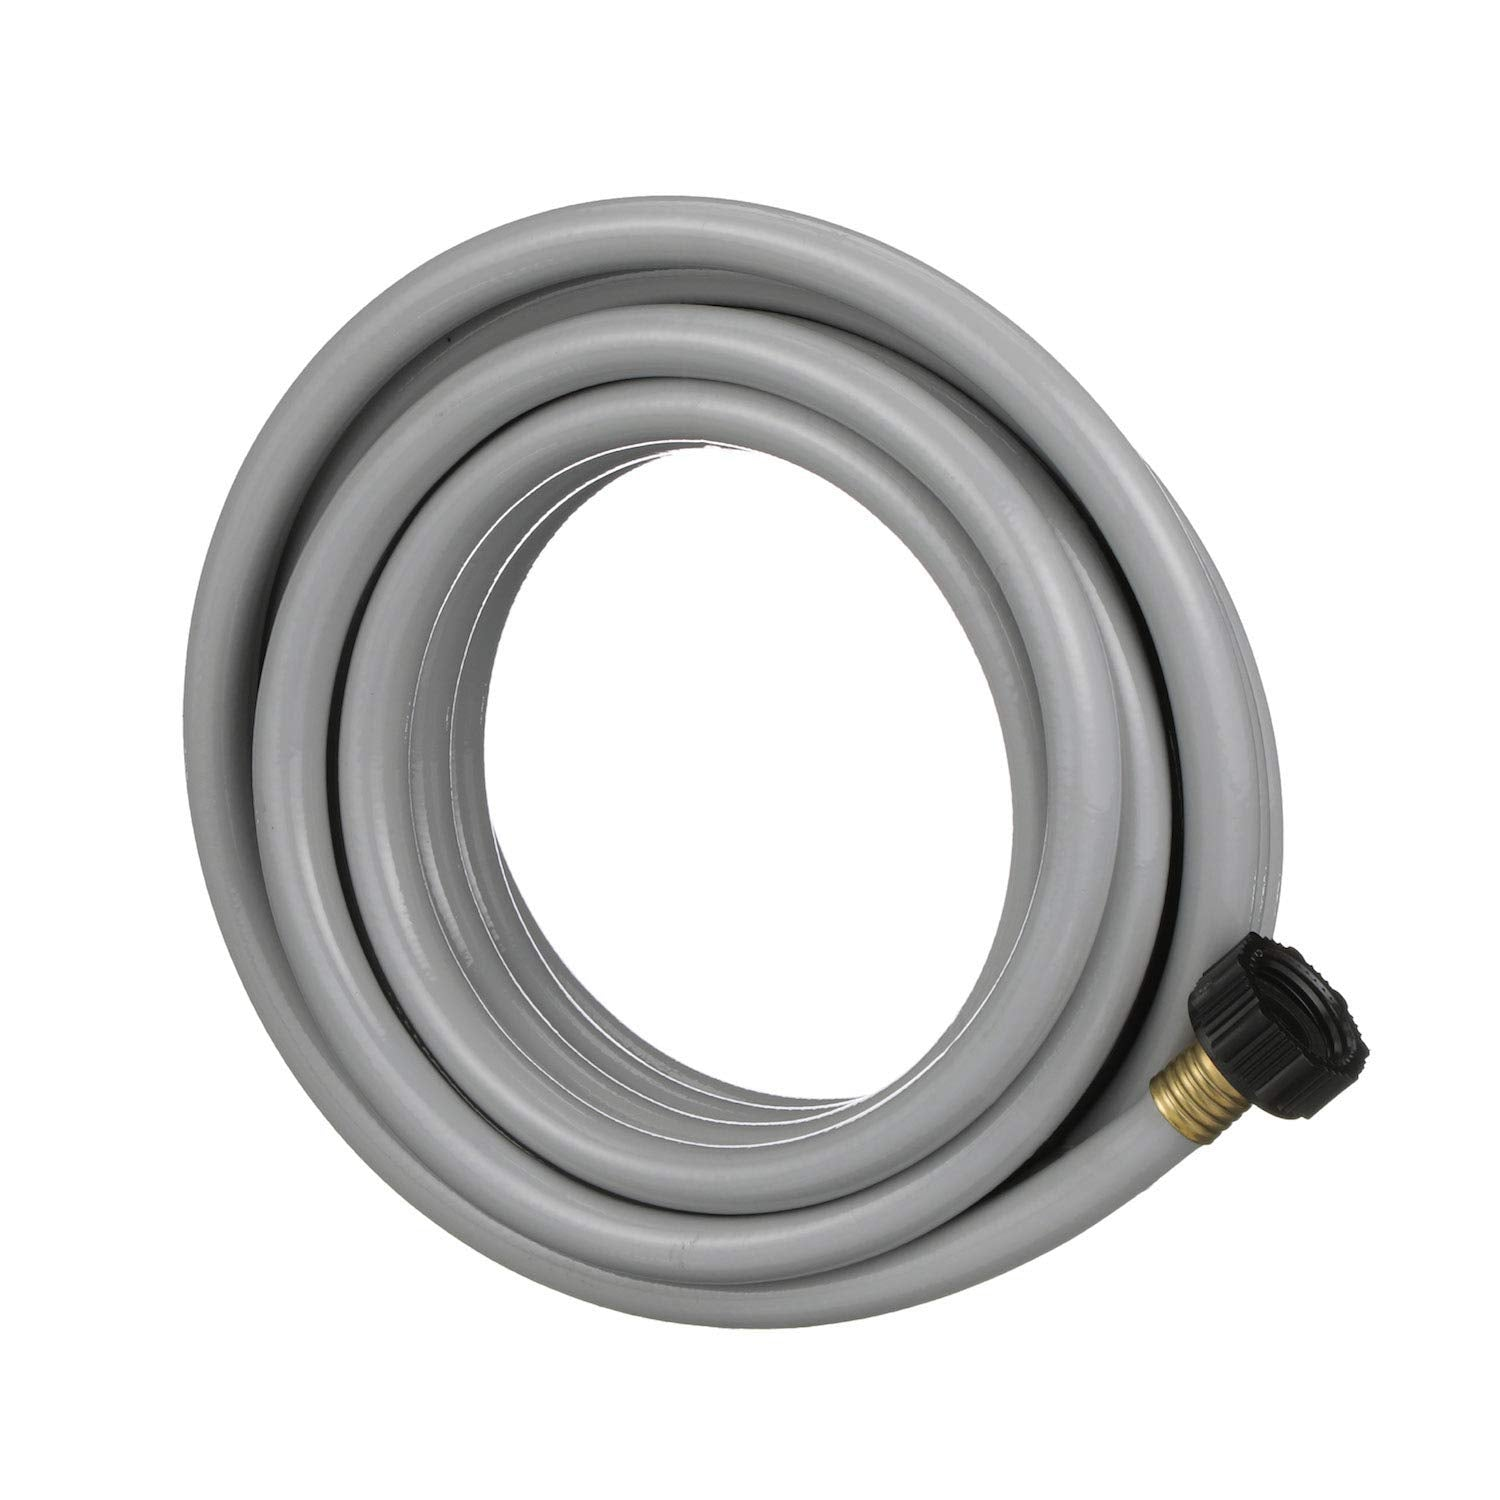 25' Gray Water Flush Hose